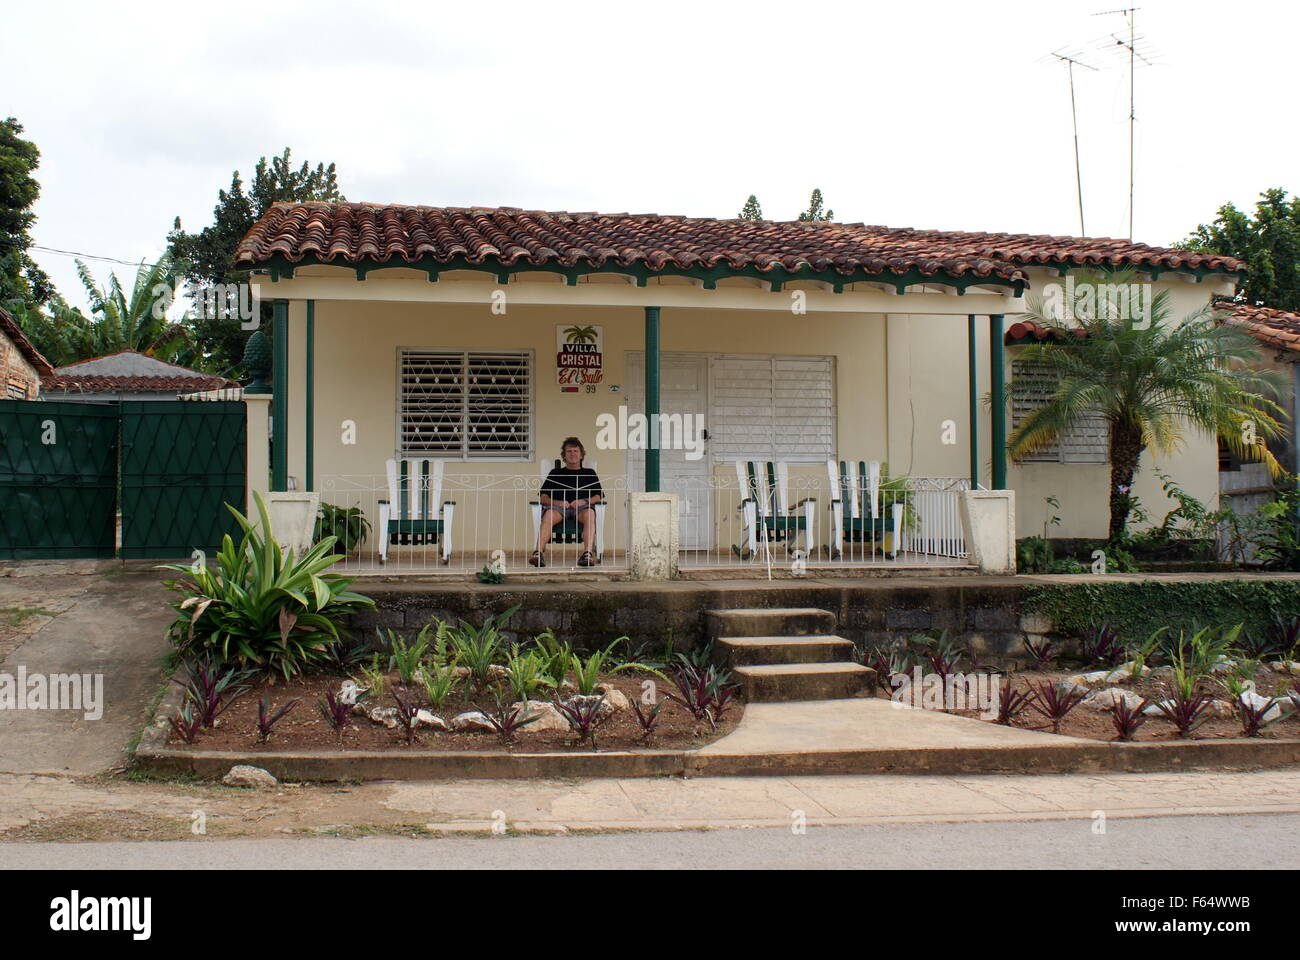 Sitting outside a casa particular (Cuban guest house), Vinales, Cuba - Stock Image